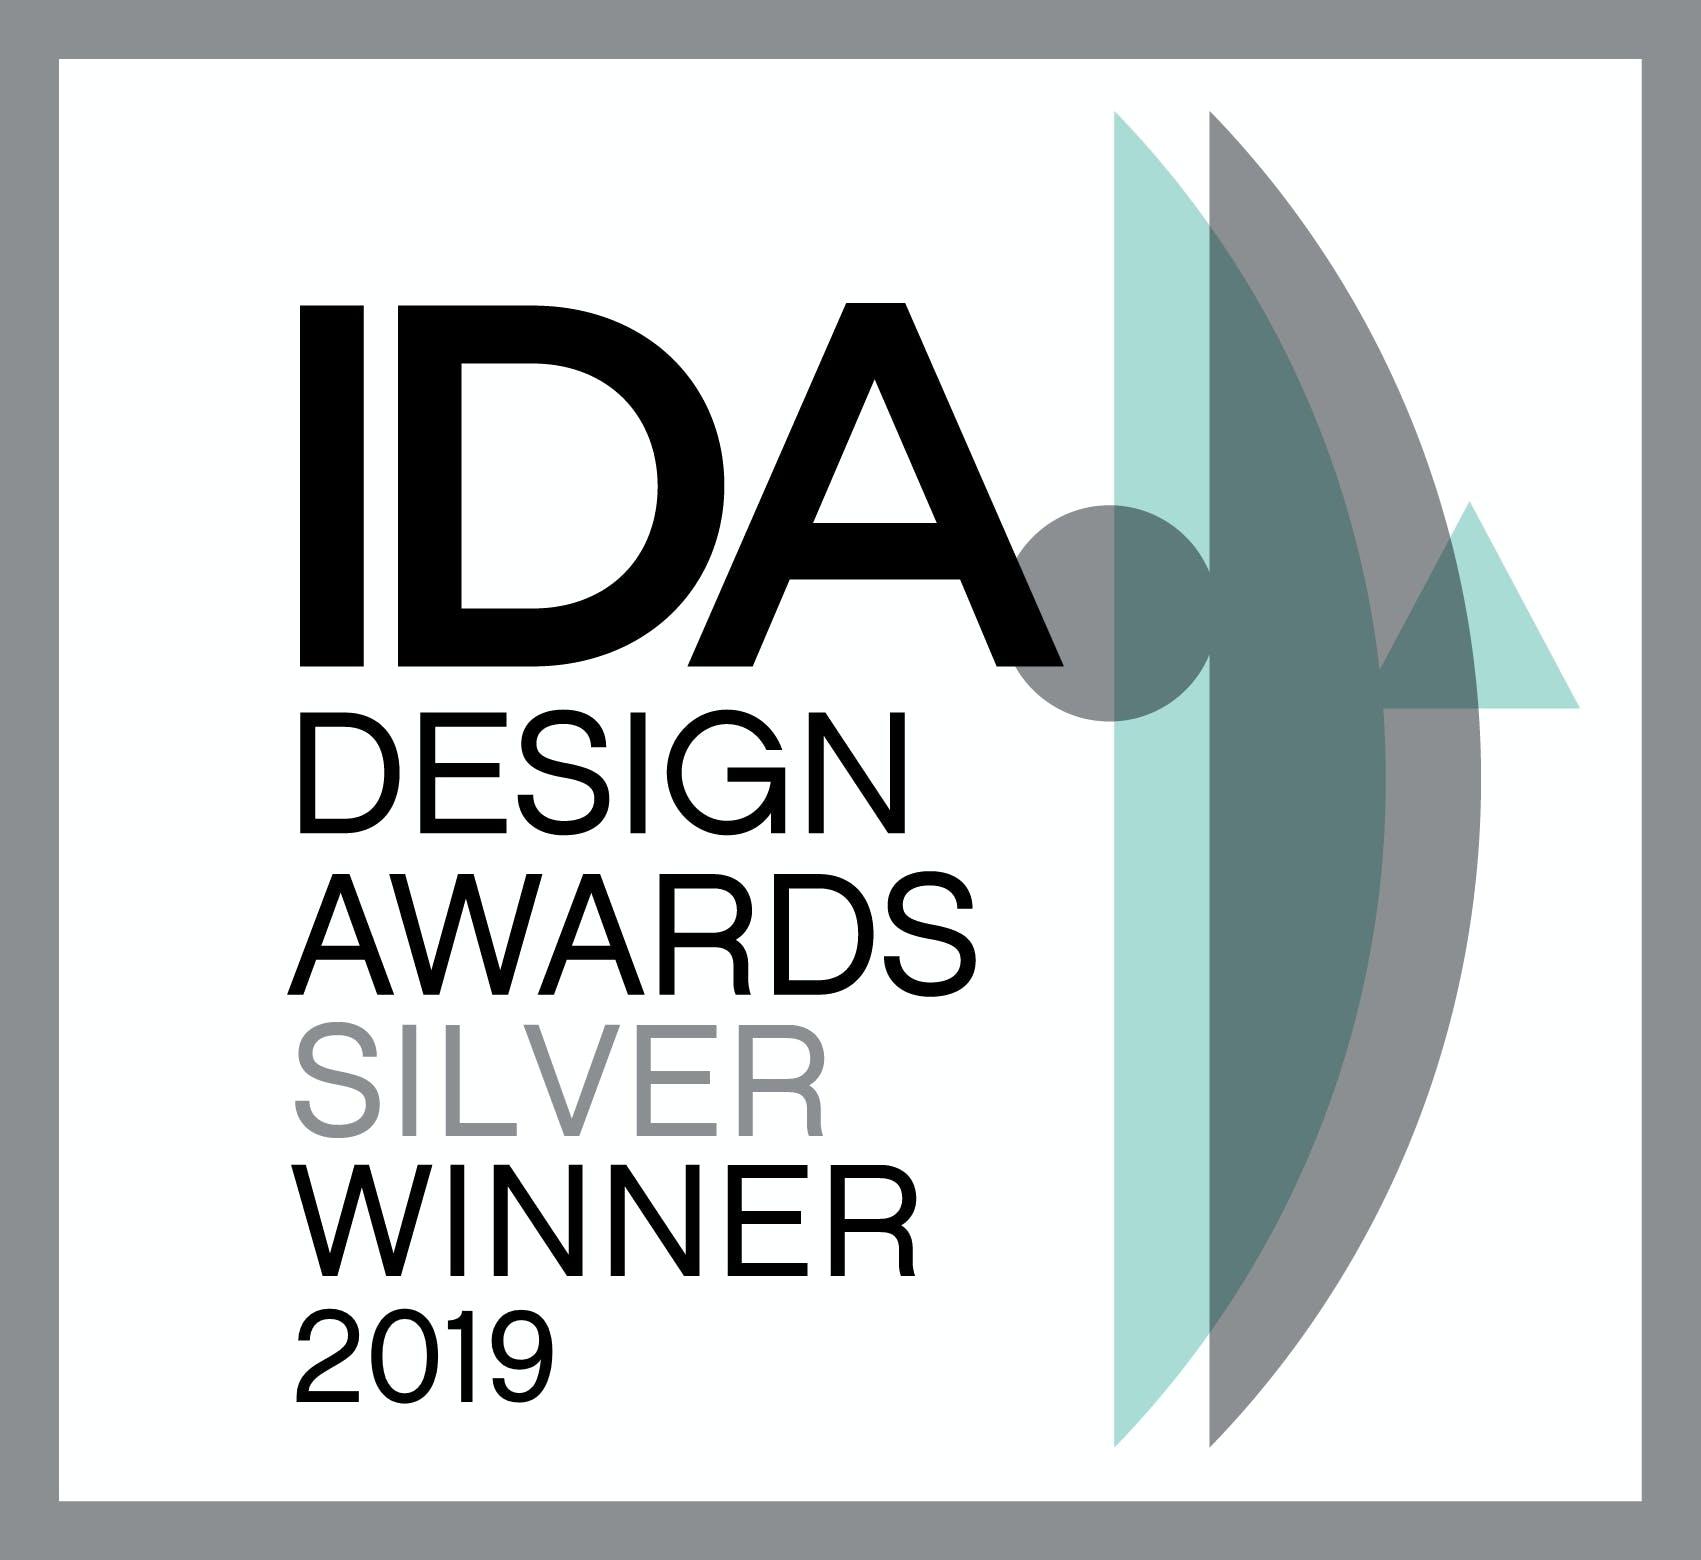 Image of International Design Awards 2019 Silver 1 2 in Dekton Trilium Wins Silver in 2019 International Design Awards for Eco-Sustainable Design - Cosentino